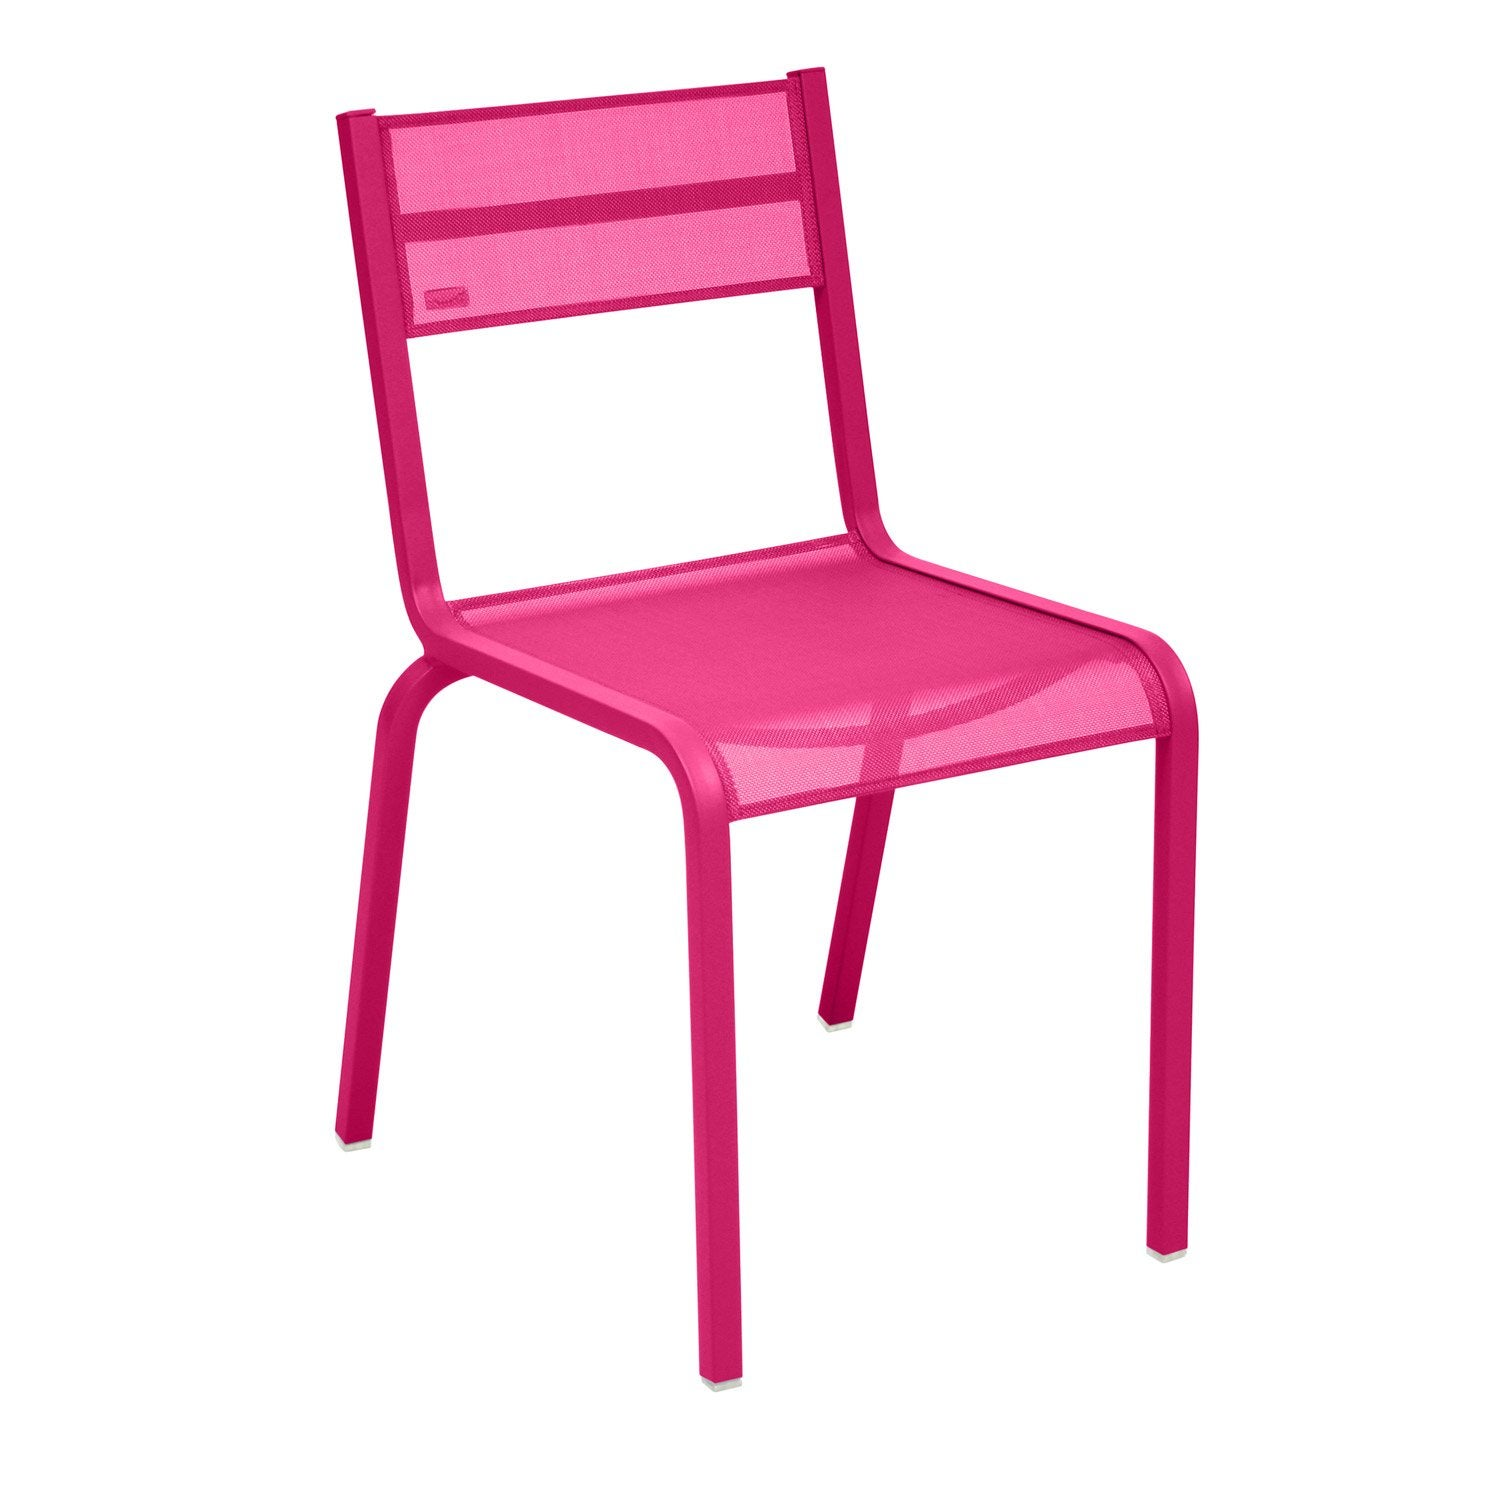 Chaise de jardin en aluminium ol ron coloris fuchsia for Chaise jardin leroy merlin